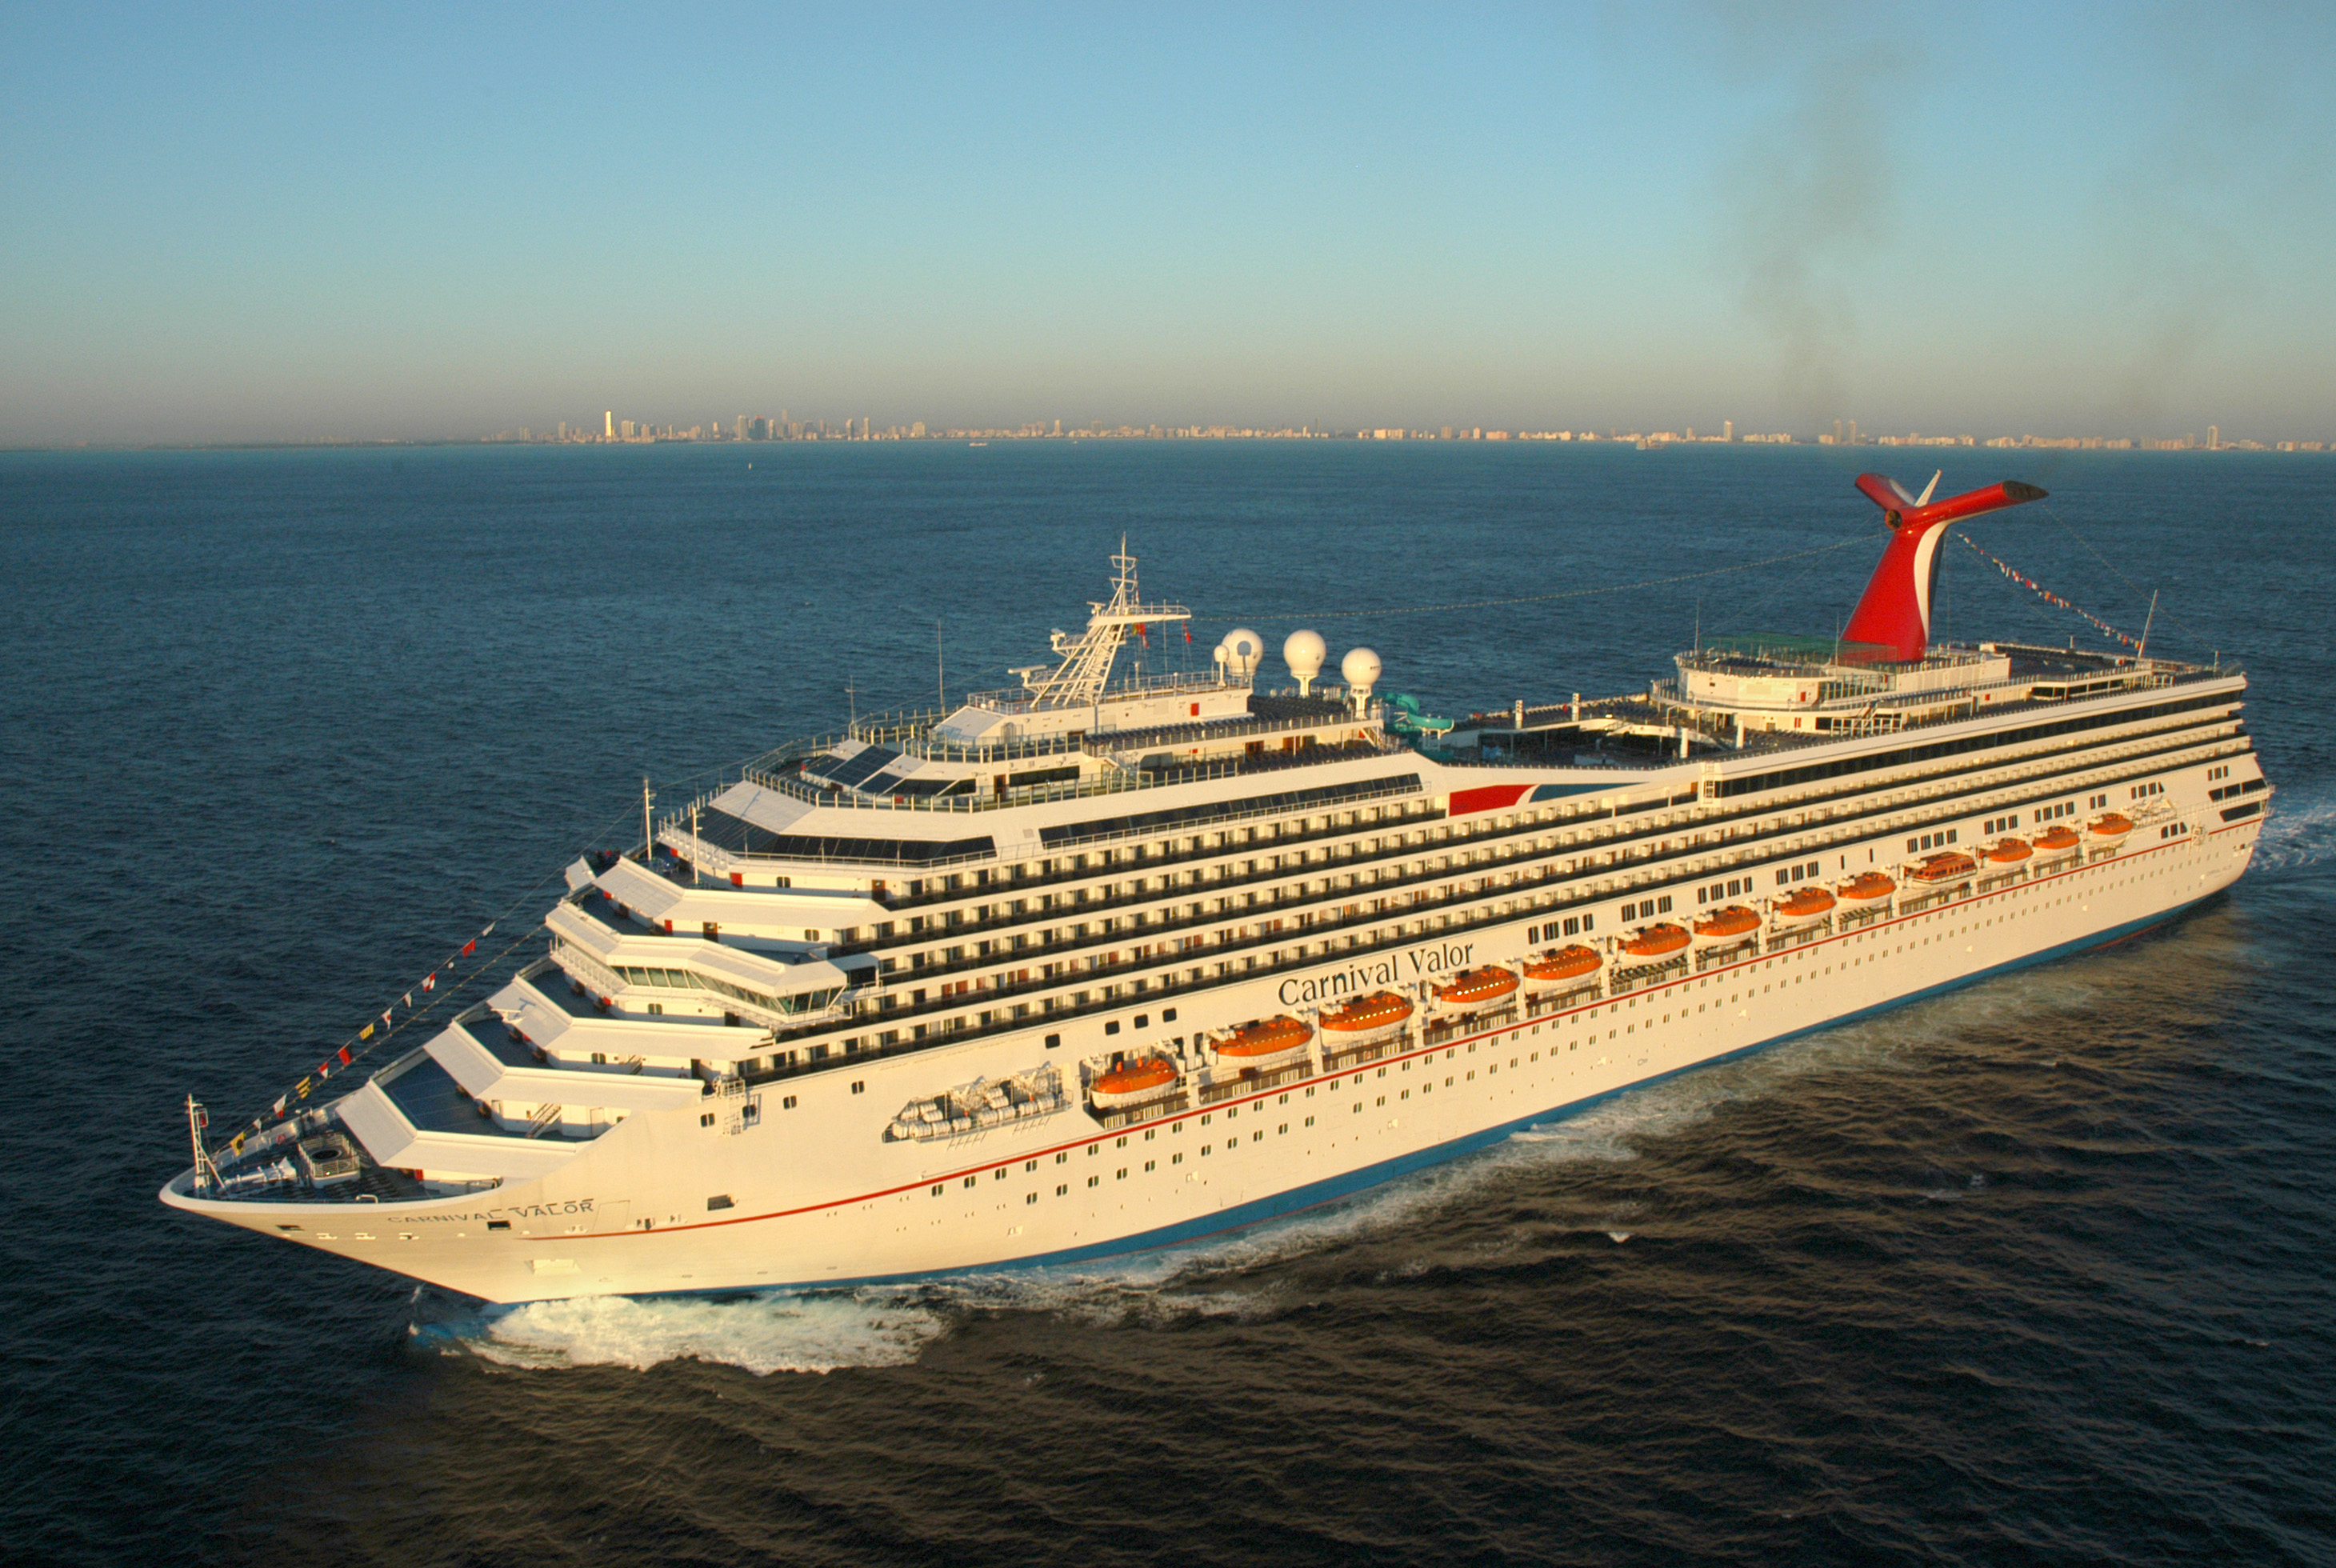 Carnival Cruise Line Celebrates CLIA's Plan A Cruise Month With #CruiseSmile Sweepstakes Awarding Free Cruises on Carnival Breeze, Carnival Valor